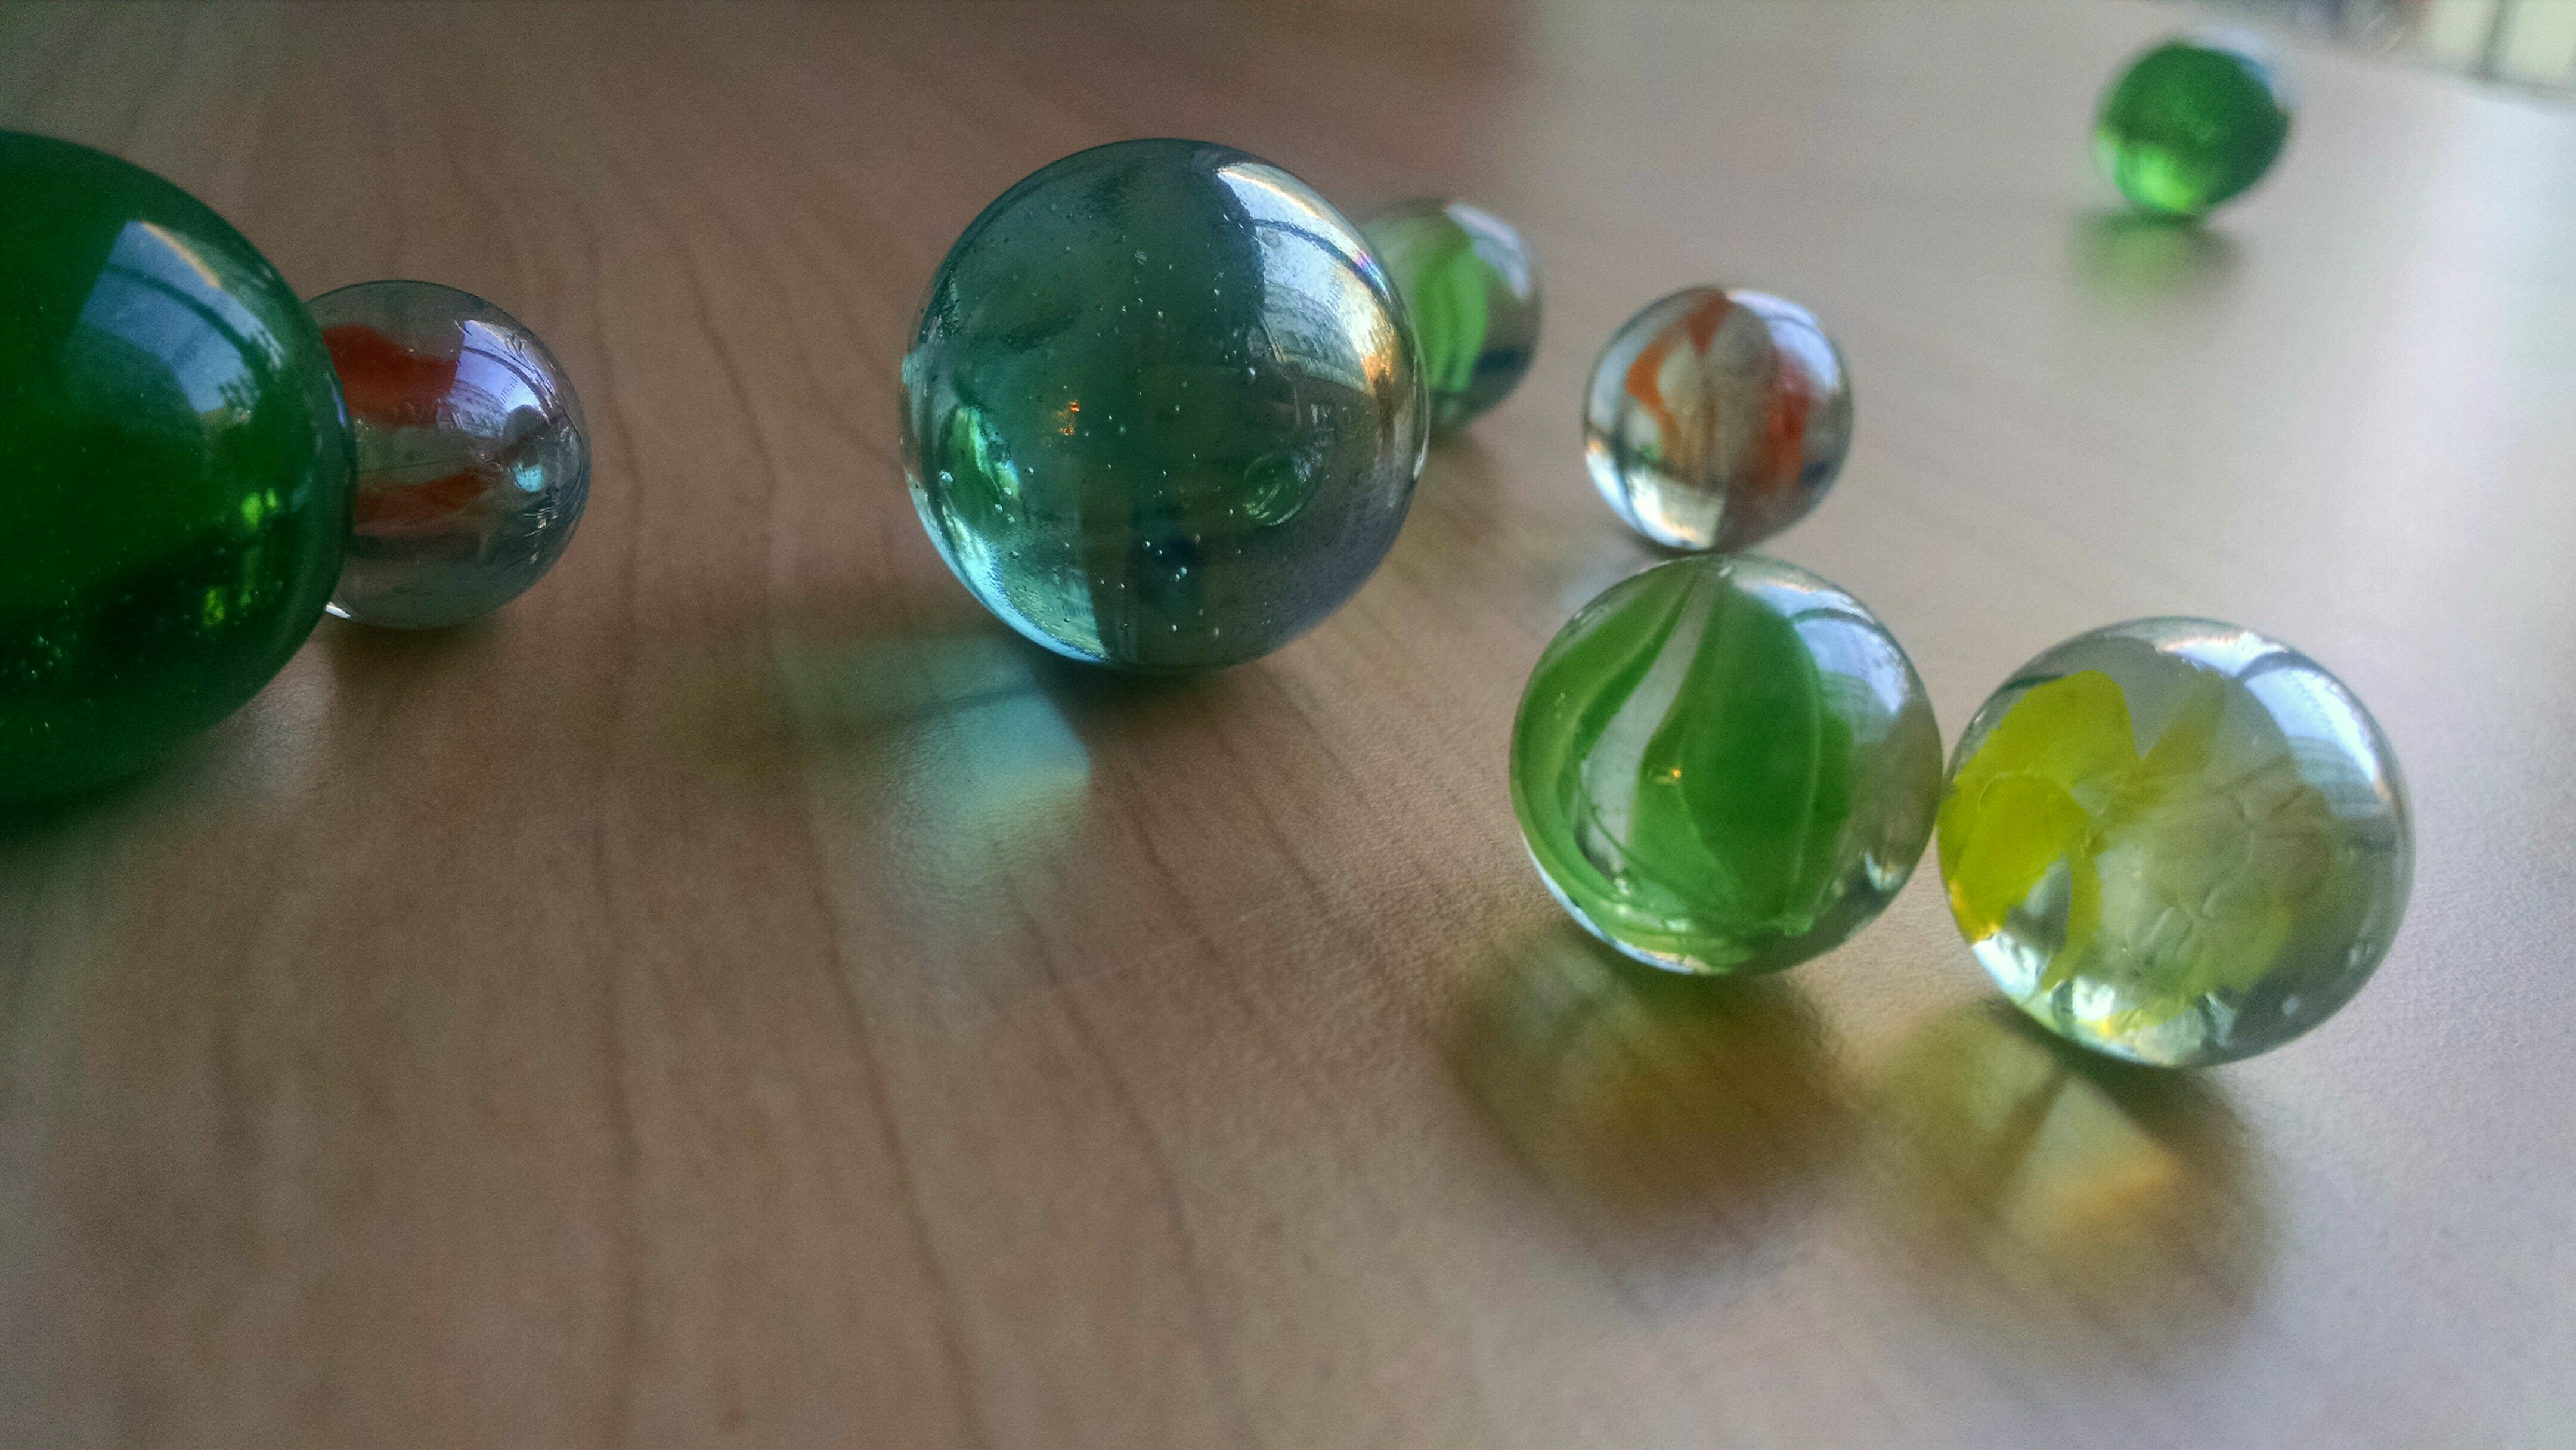 Glass Marbles Game : Free stock photo of game glass marbles